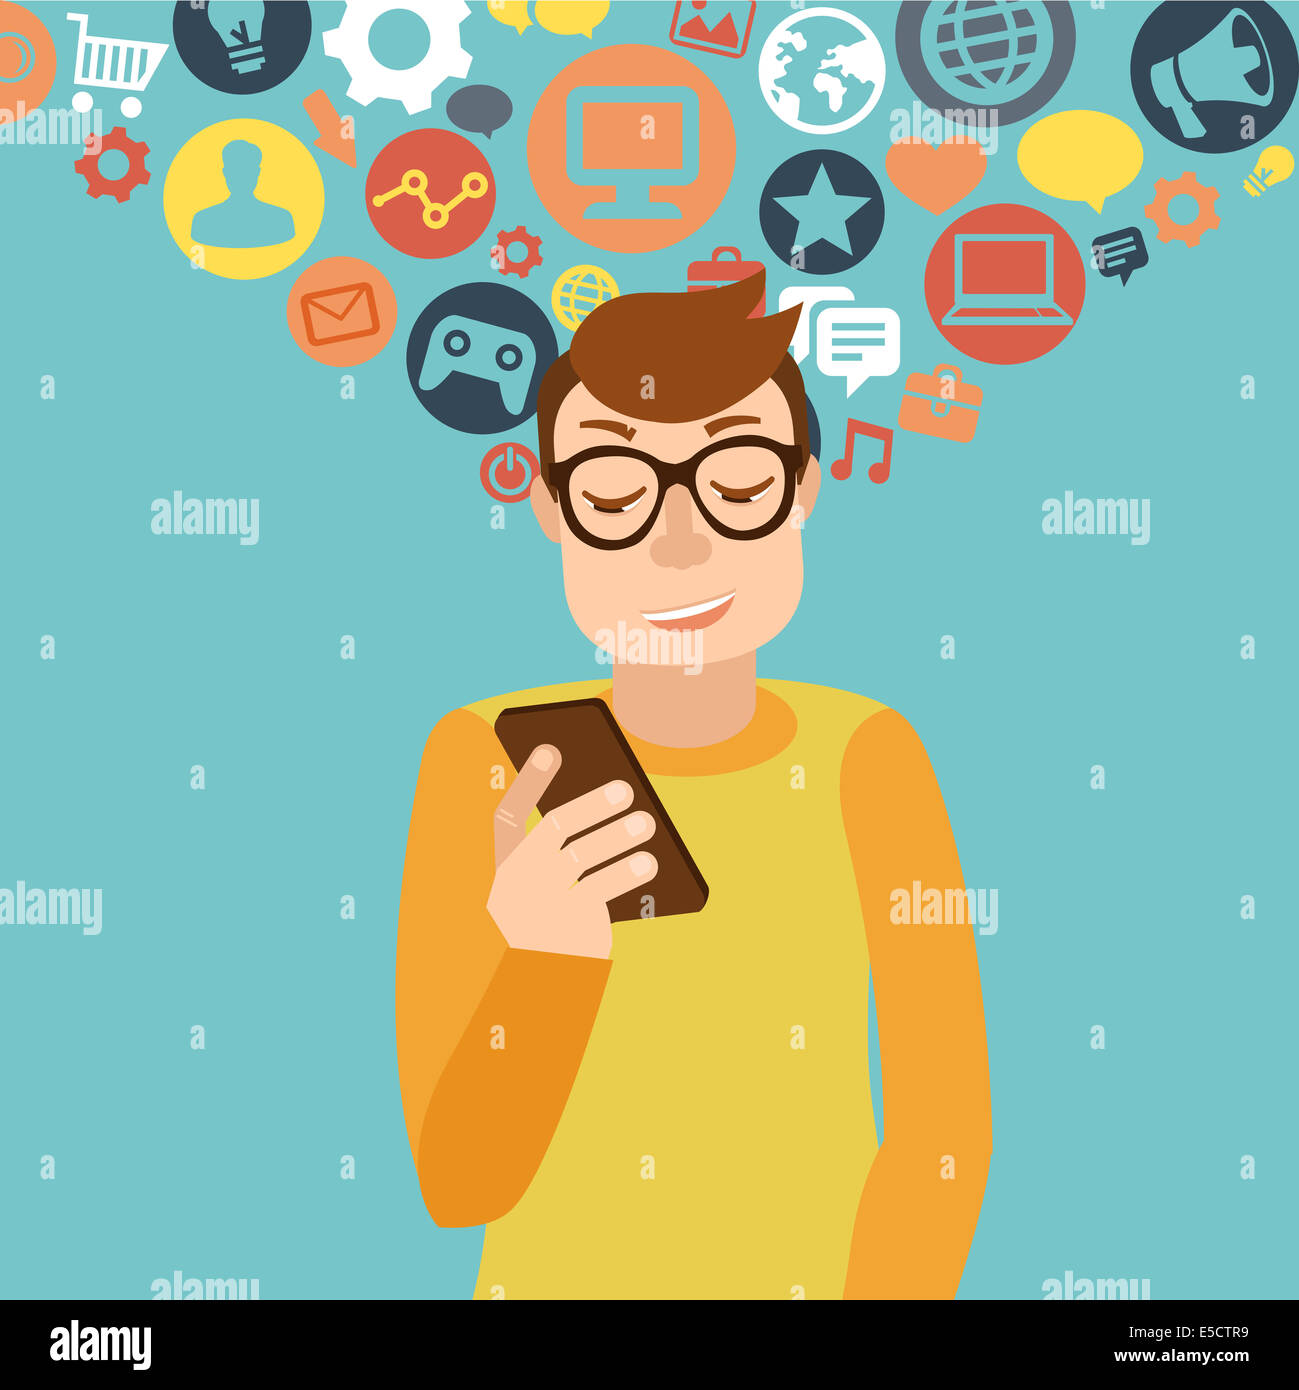 Man wearing glasses in flat style - smartphone addiction concept - Stock Image